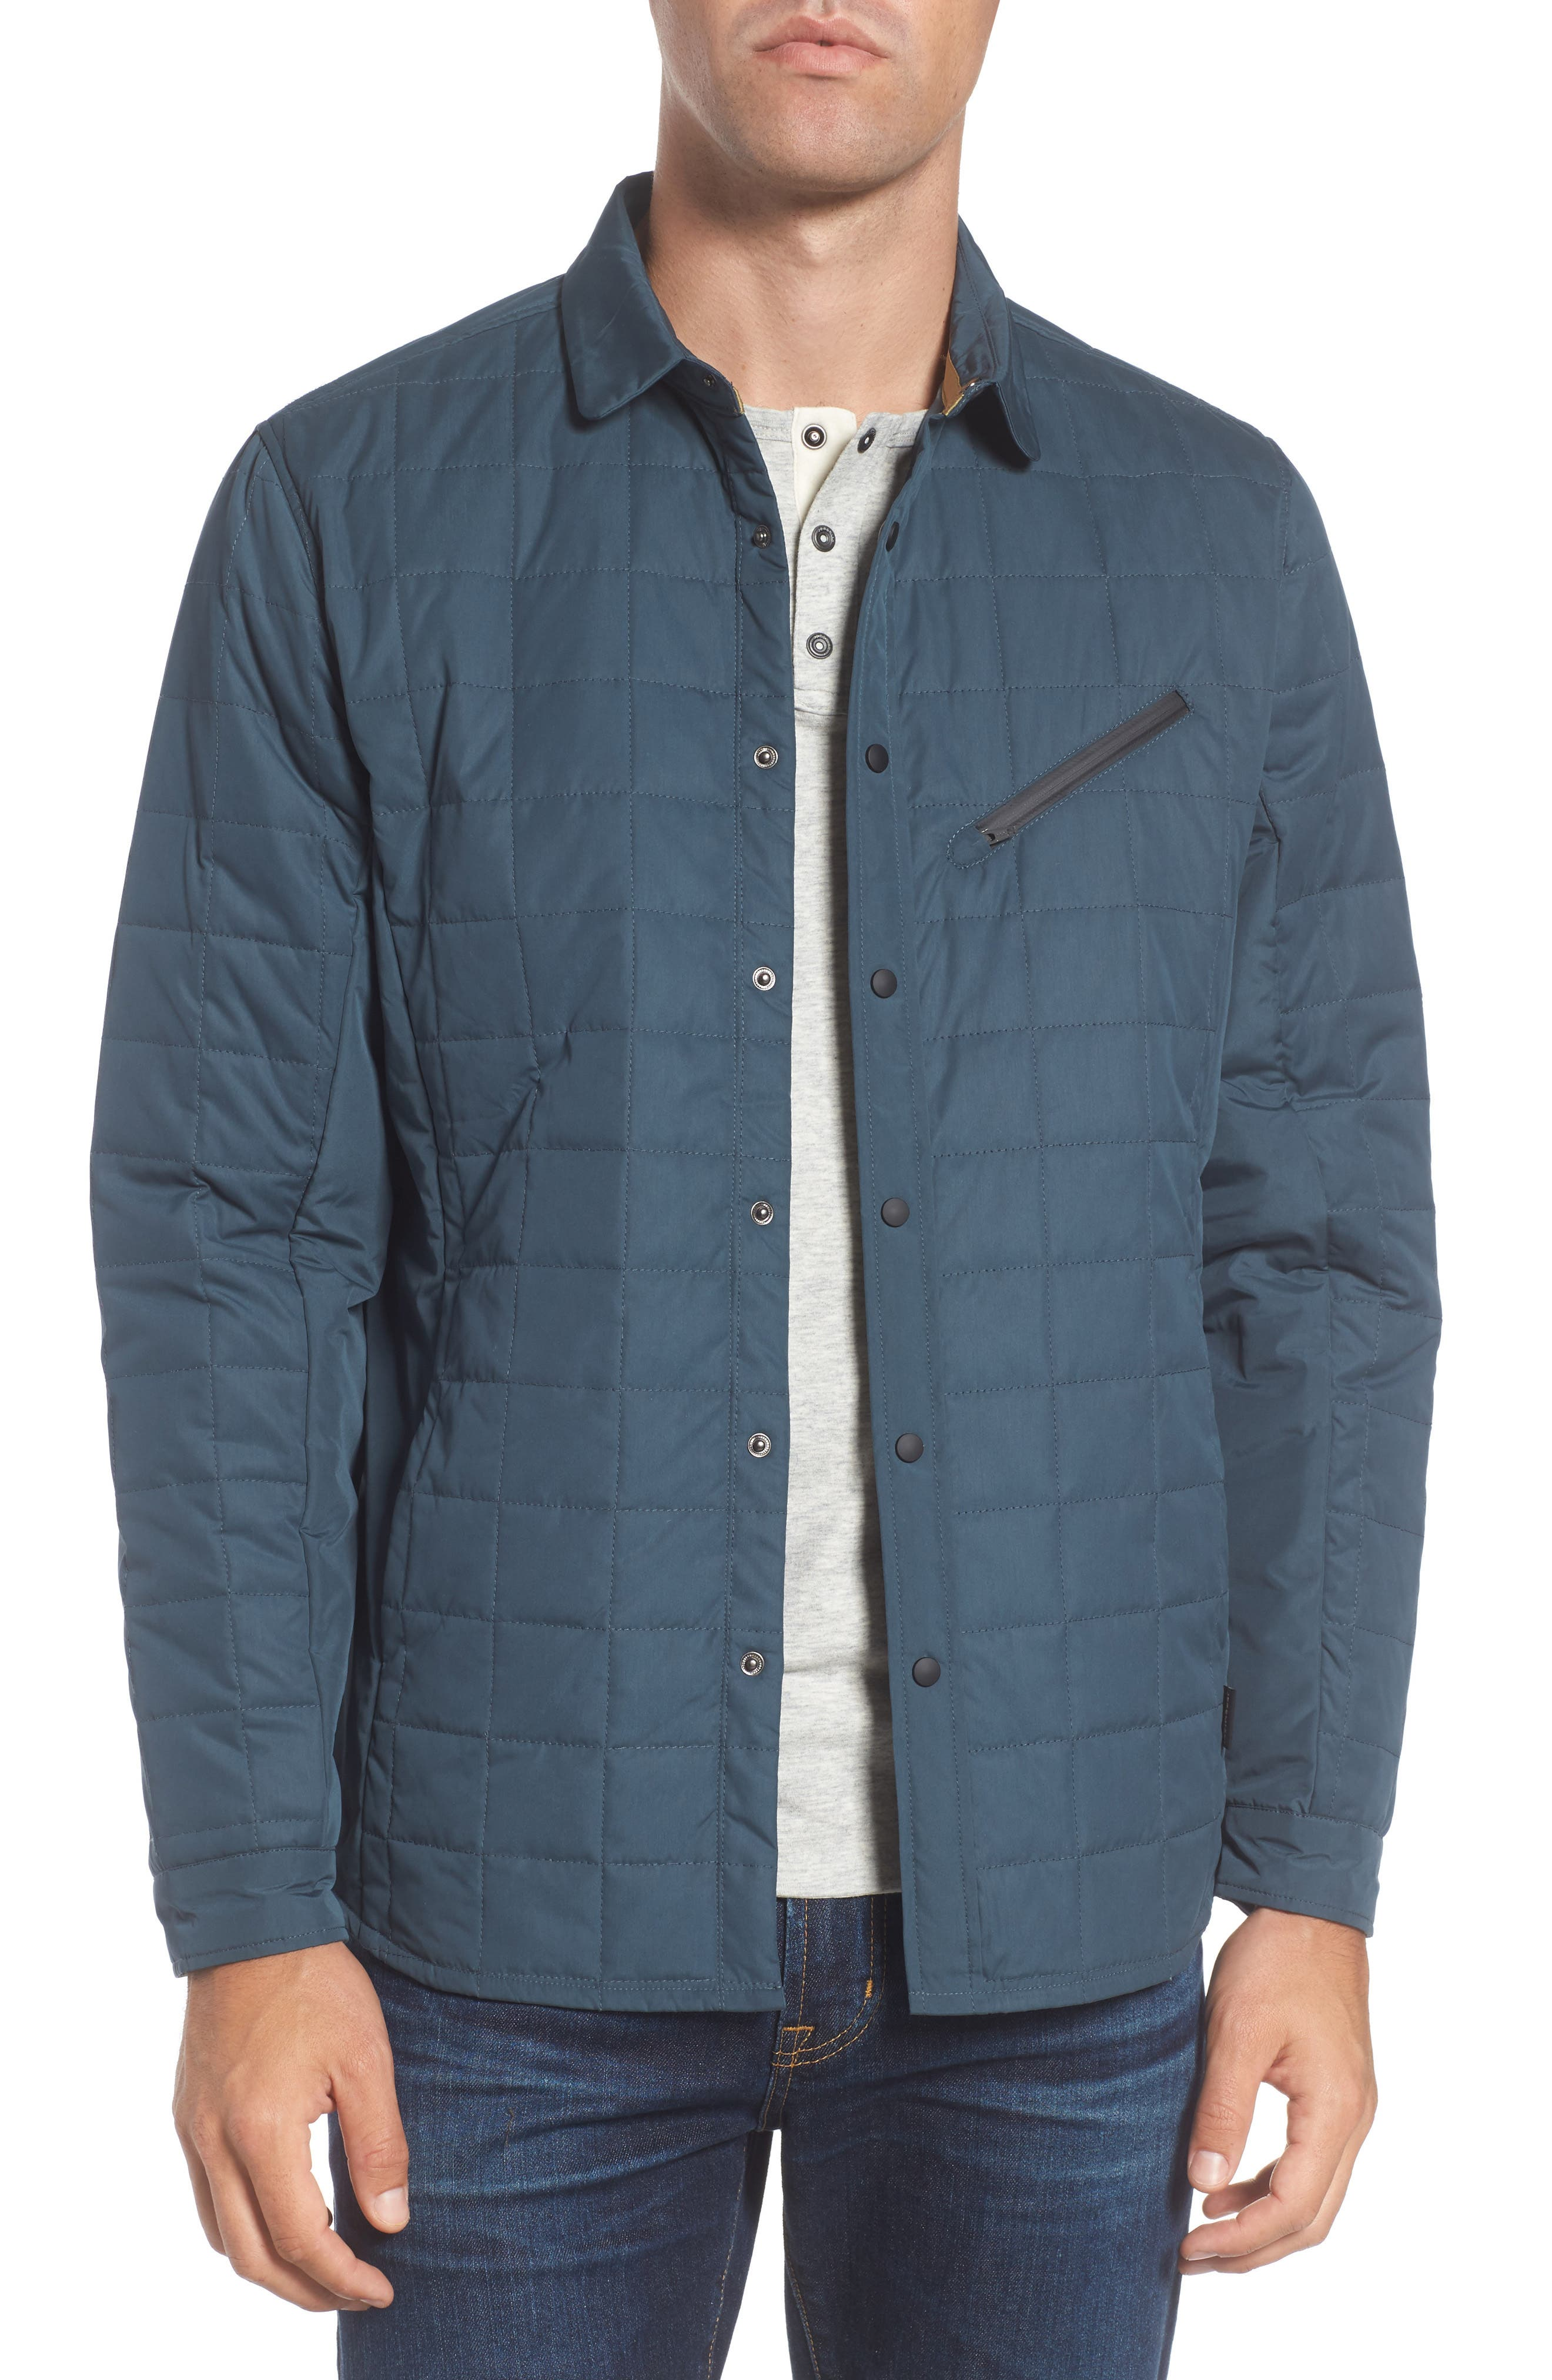 Alternate Image 1 Selected - Jeremiah Bixby Quilted Shirt Jacket